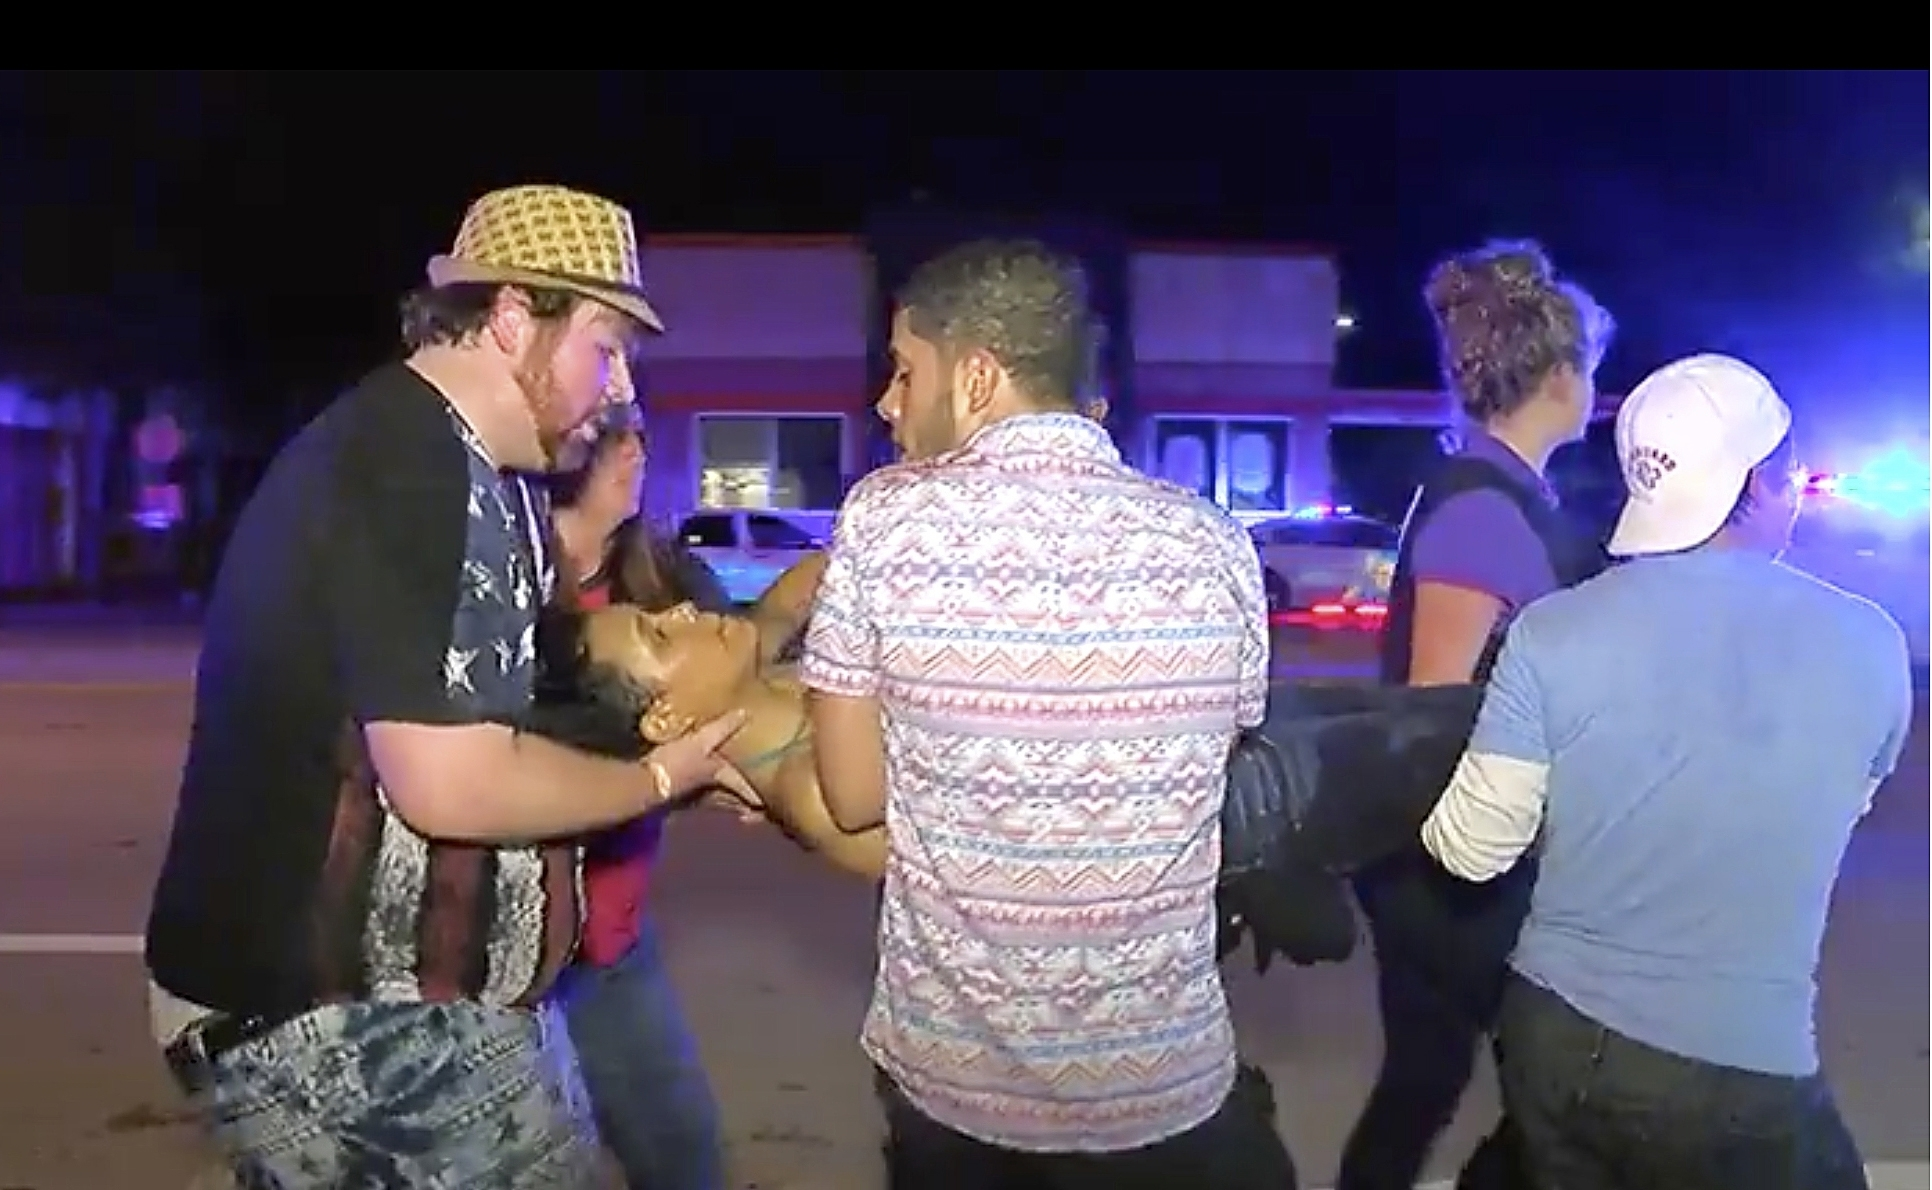 An injured club-goer is carried out following the shooting.